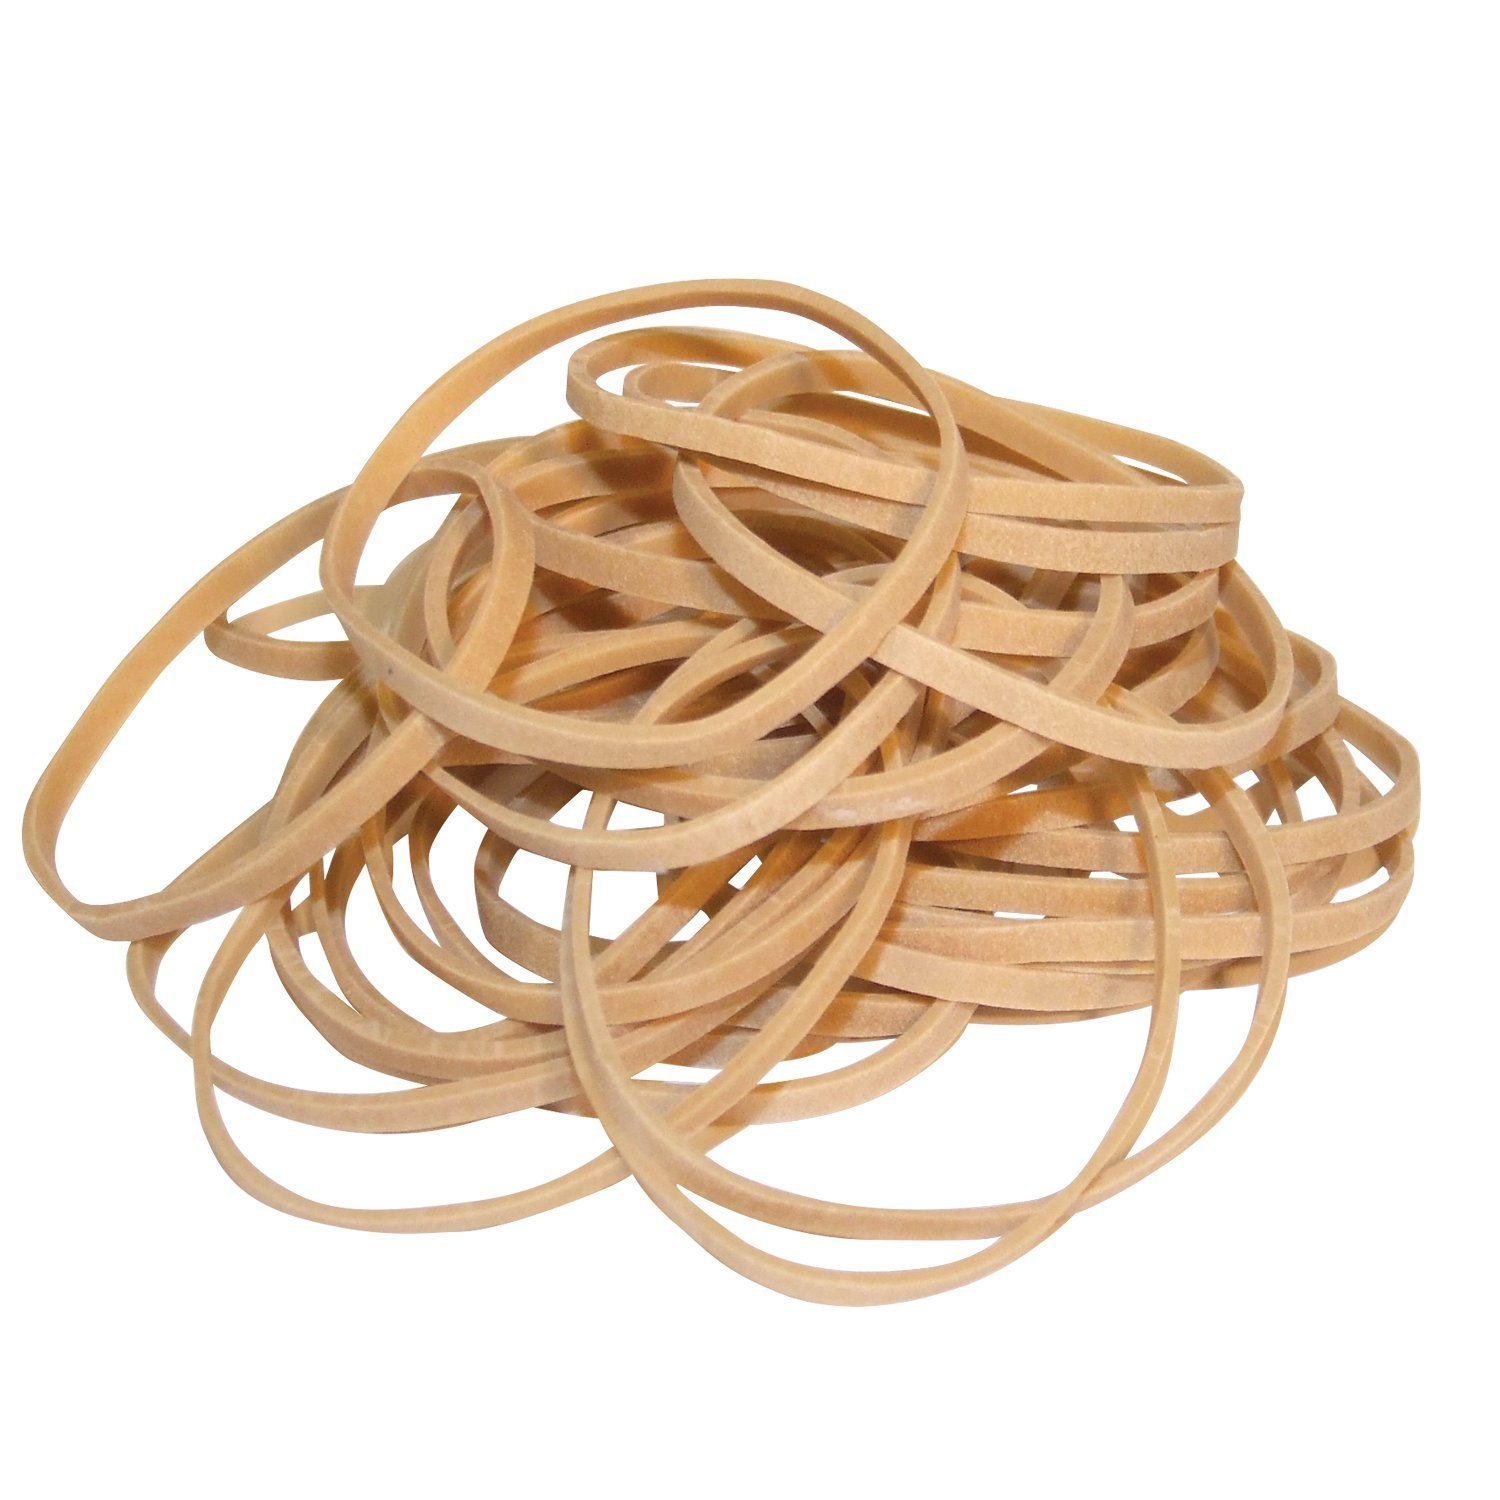 Rubber Bands ValueX Rubber Bands (No 36) 3x130mm 454g